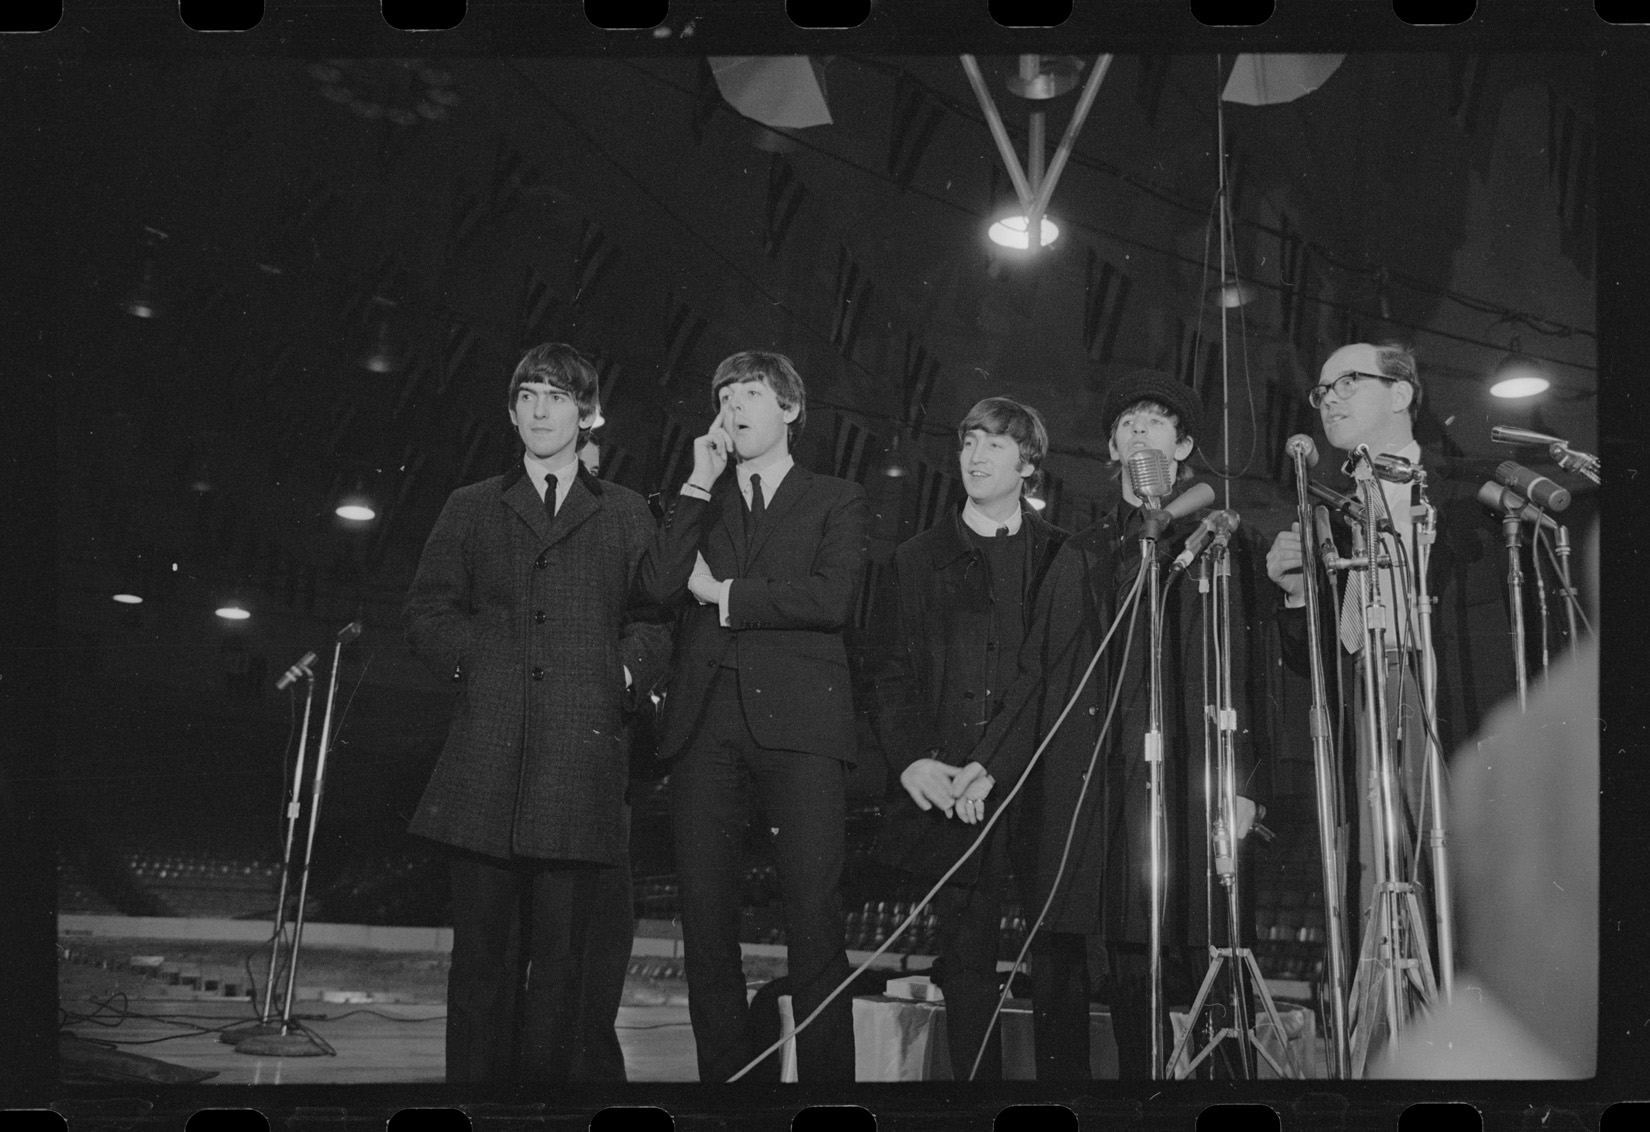 Five men in suits and jackets stand in a line facing the viewer in a black and white photograph. In front of the two rightmost men are many microphones on stands. All the men are looking off to the left, and are standing in a large room with flags hanging from the ceiling.